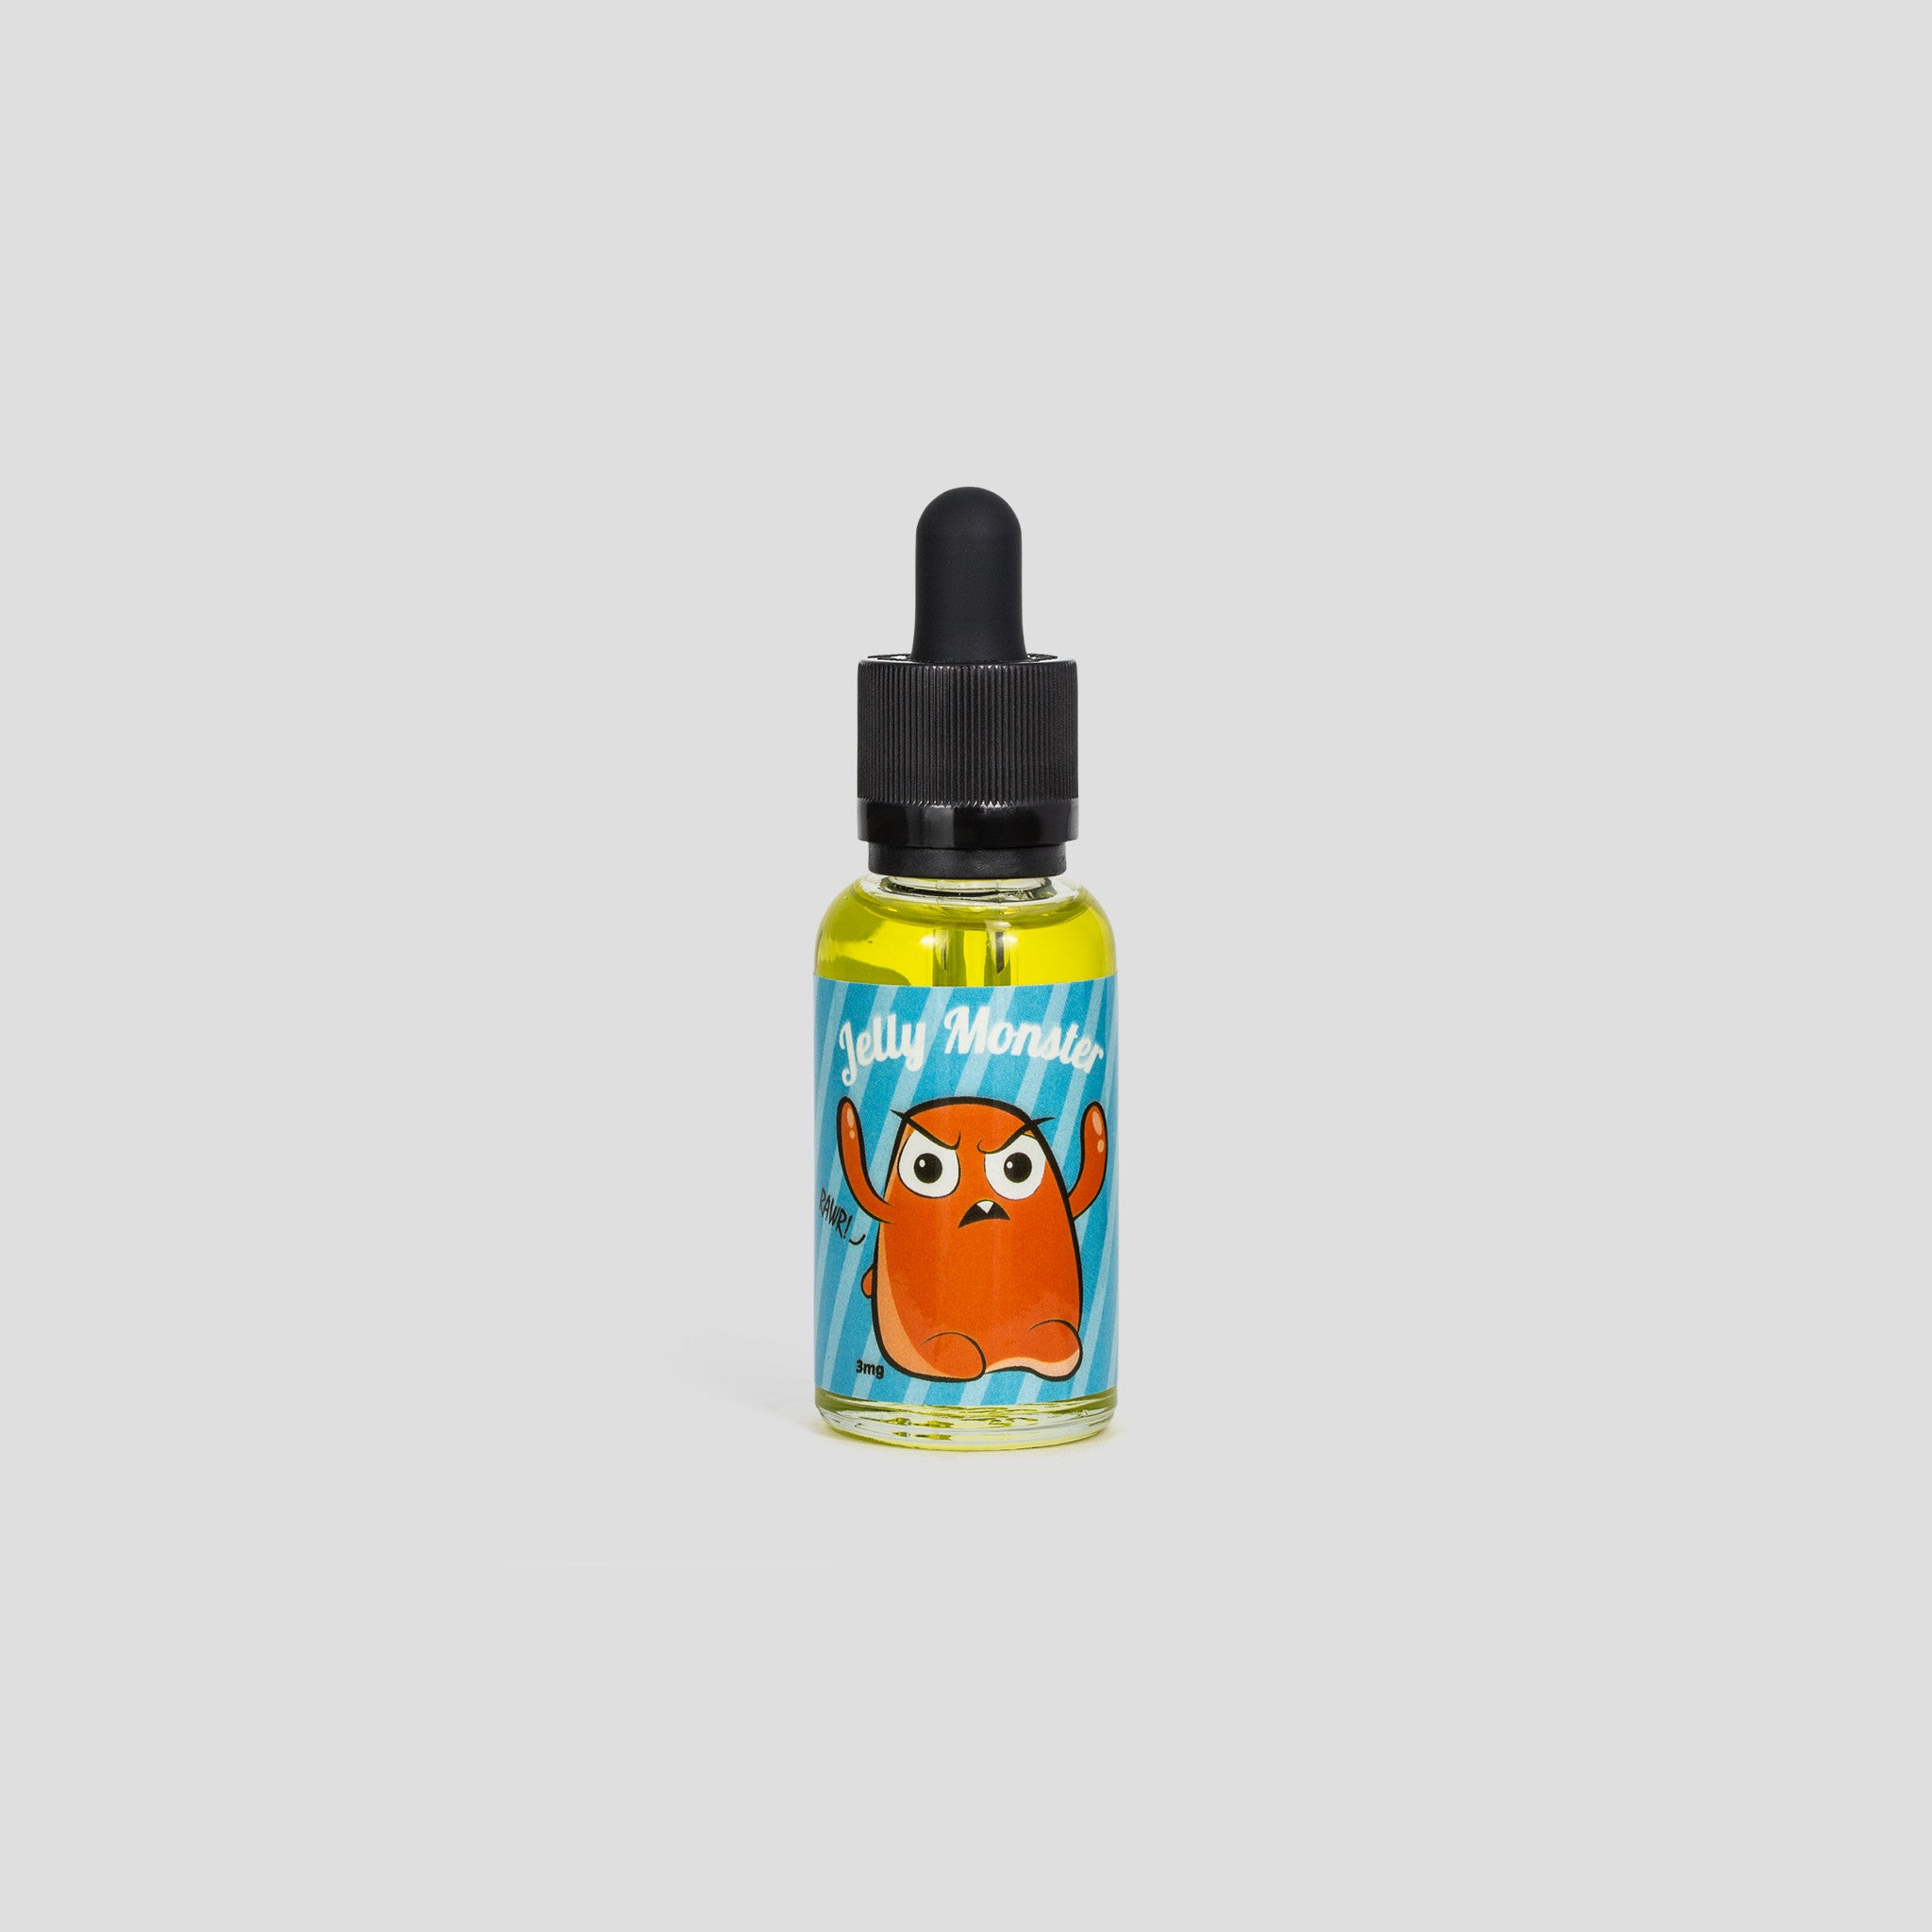 Wiener Vape Co ~ Jelly Monster